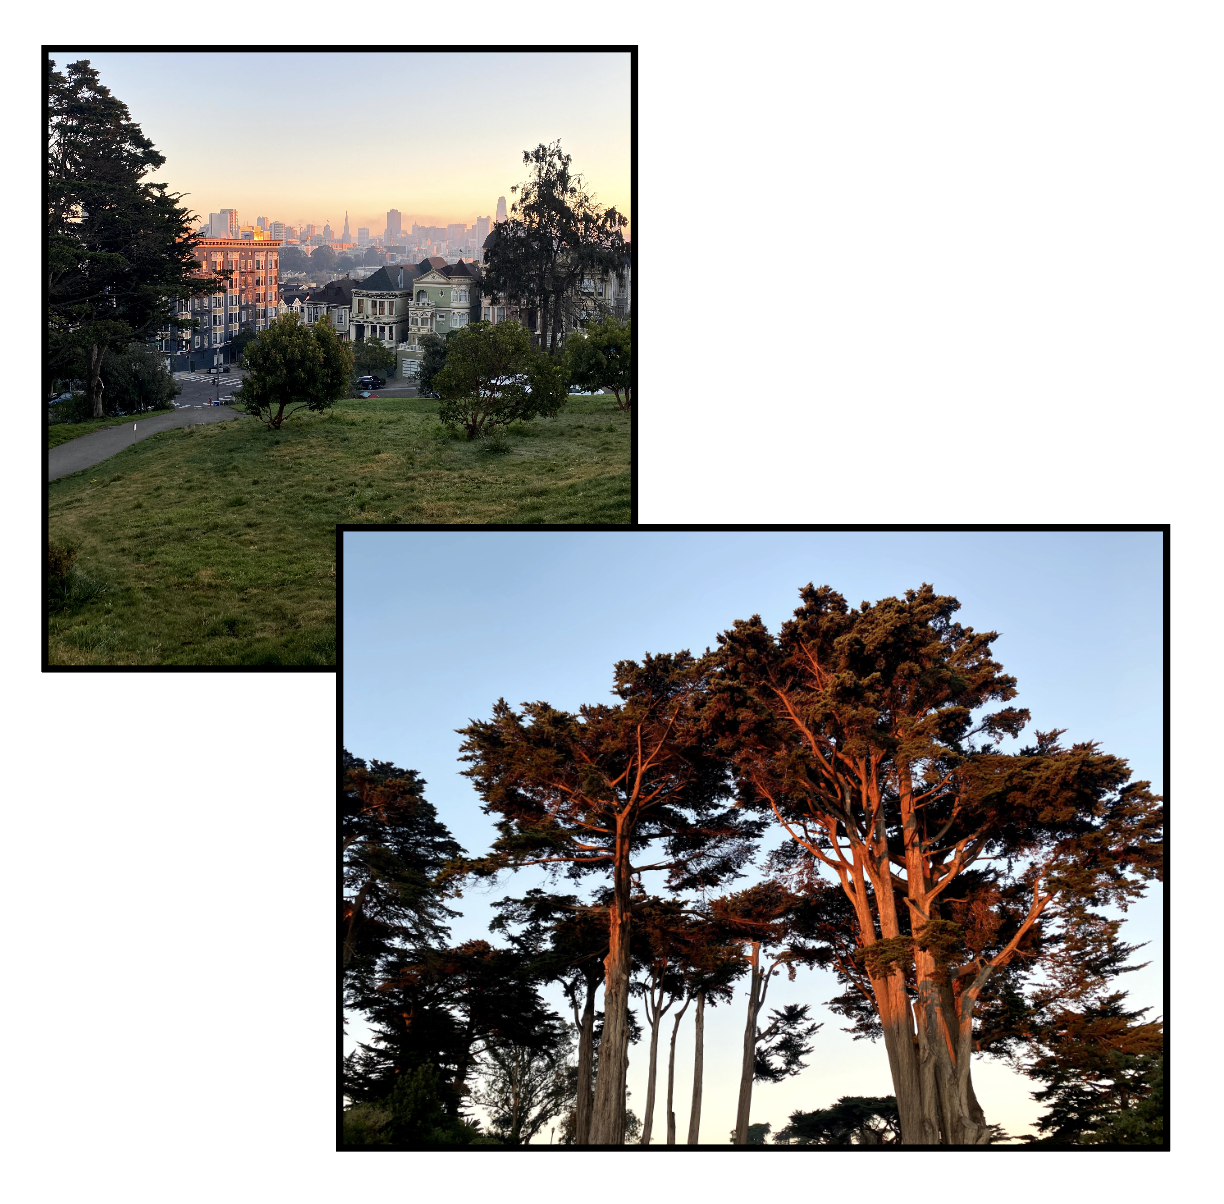 Say what you will about SF, but we have really great trees.